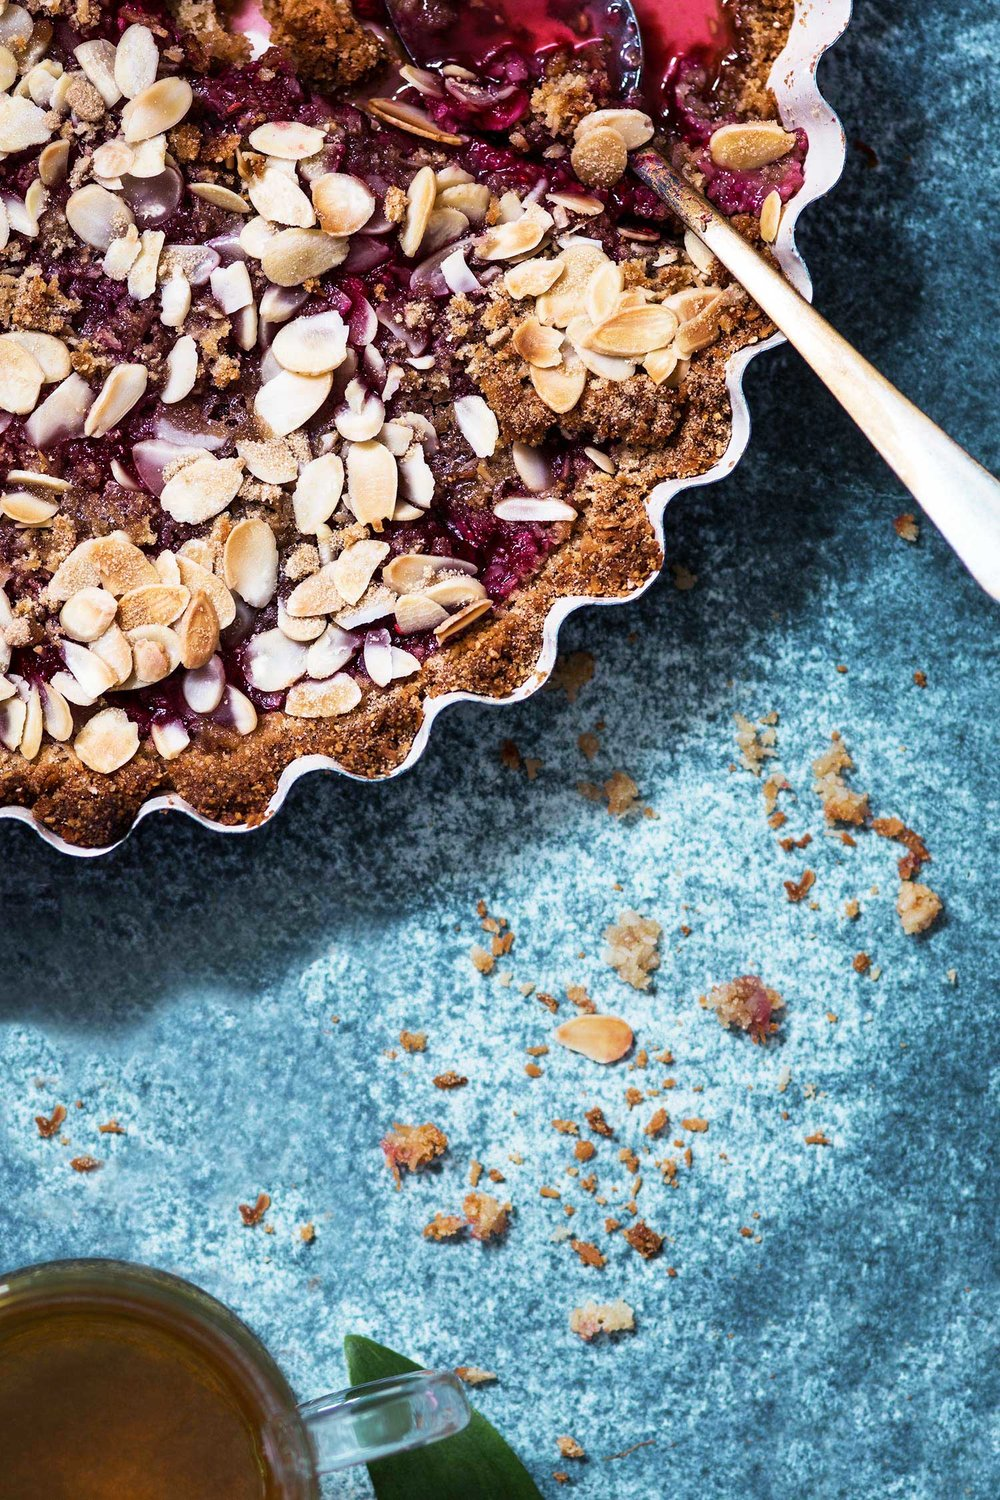 Raspberry coconut & almond crumble by Laura Domingo